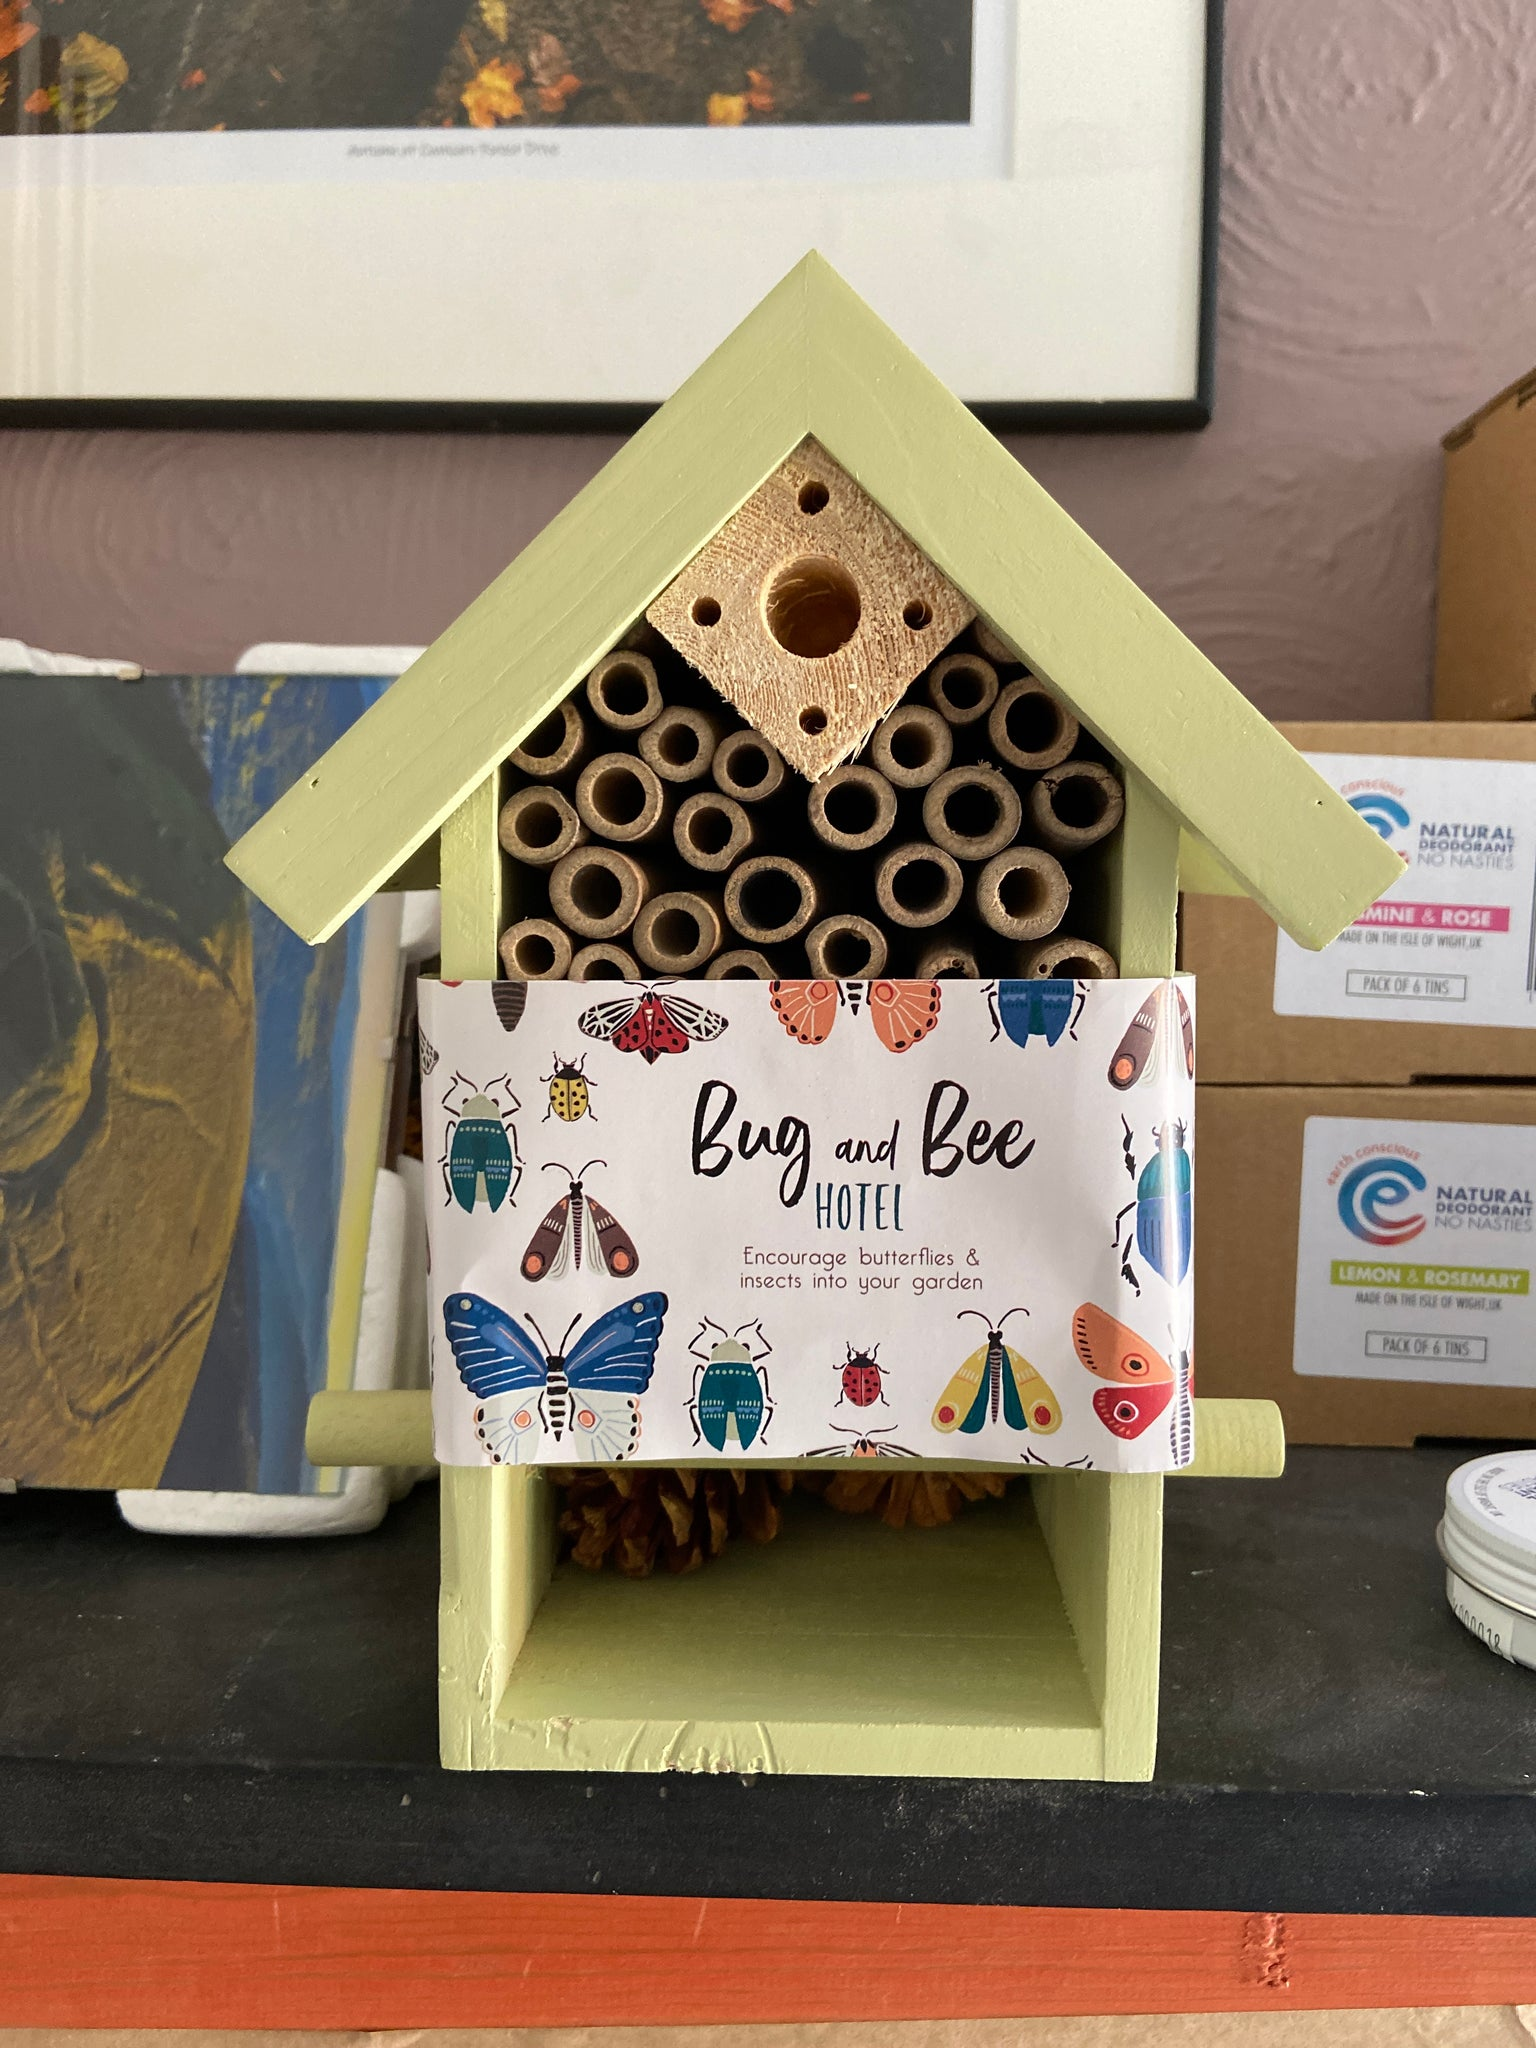 Bug and Bee Hotel